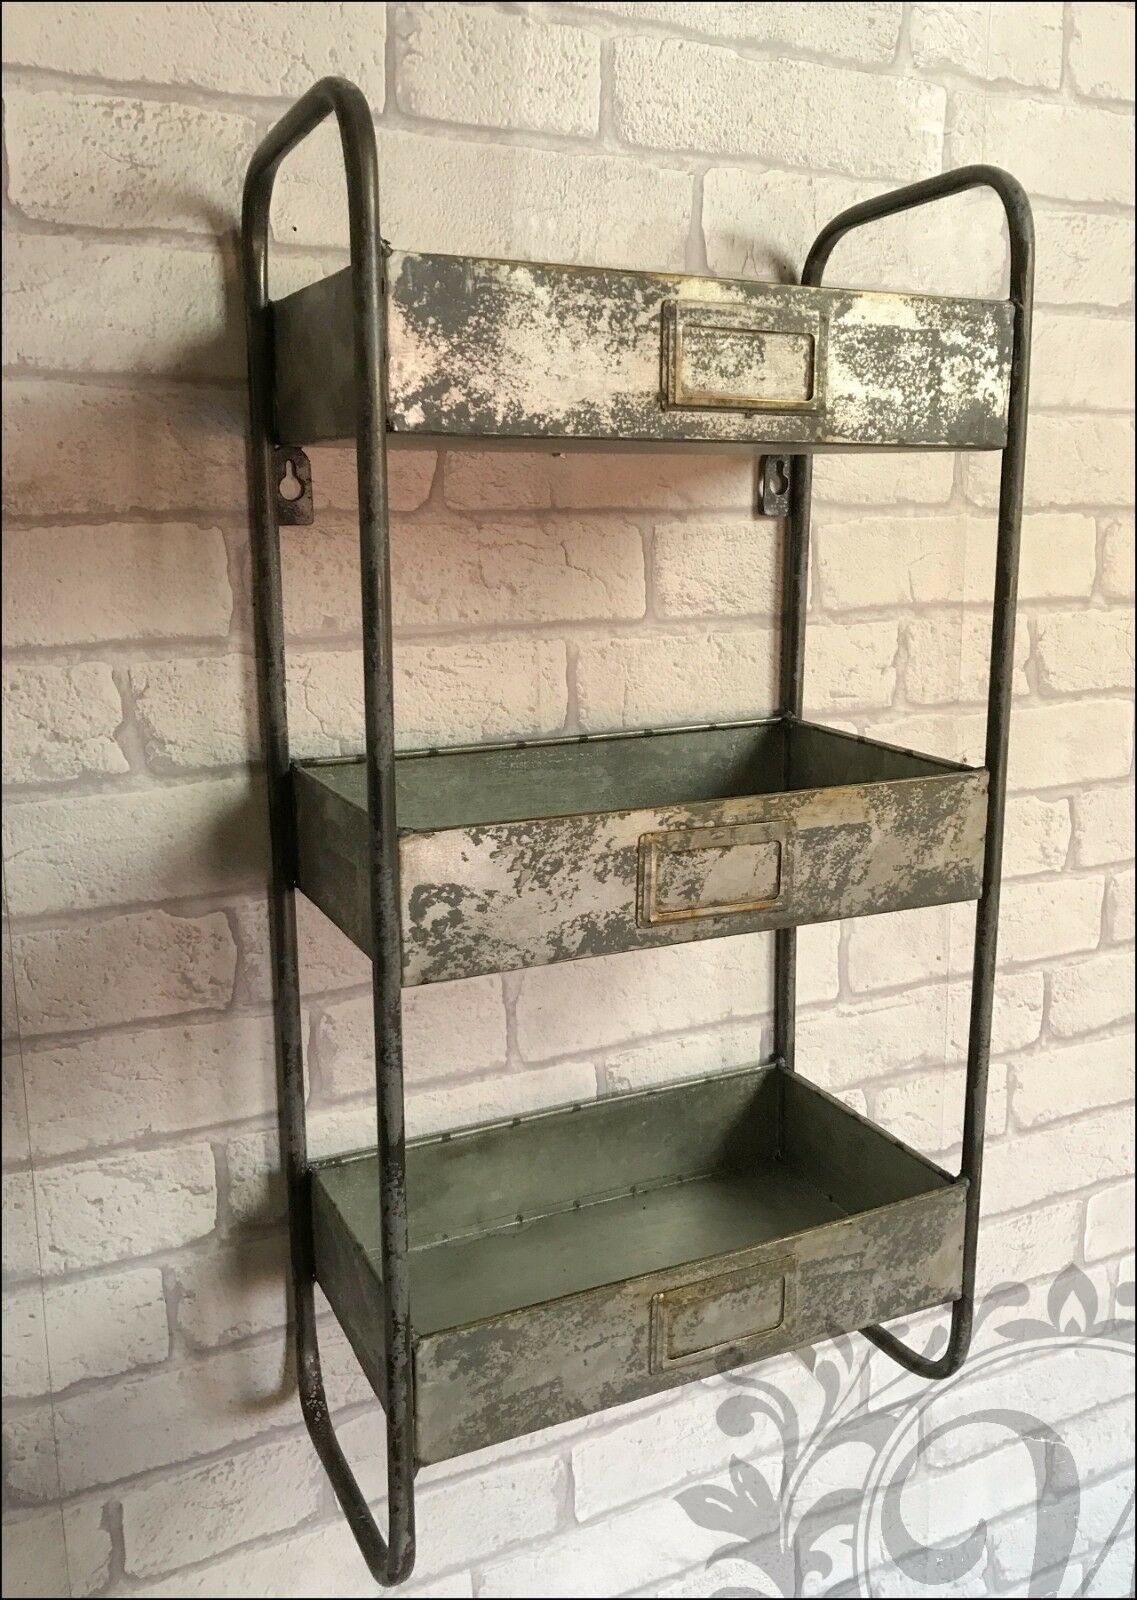 retro vintage industrial style metal shelves shelf storage cabinet cupboard unit ebay. Black Bedroom Furniture Sets. Home Design Ideas